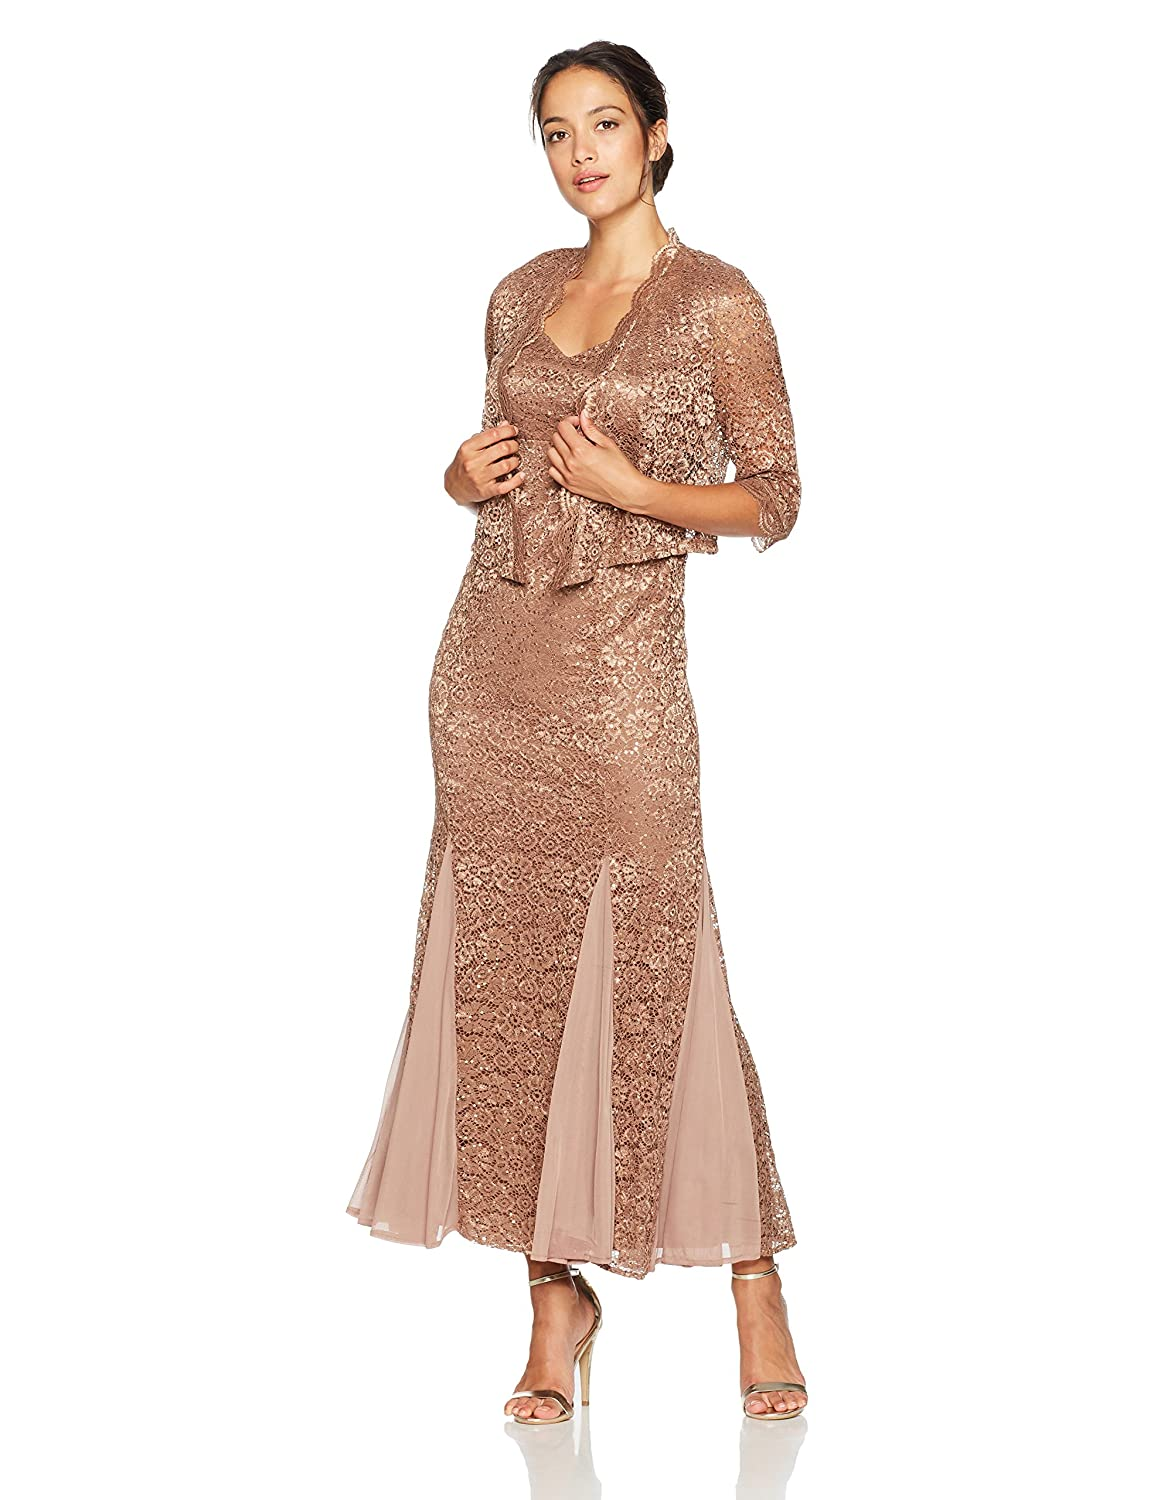 1930s Evening Dresses | Old Hollywood Silver Screen Dresses R&M Richards Womens Petite Size 2 Piece Long Metalic Lace Jacket Dress $97.00 AT vintagedancer.com